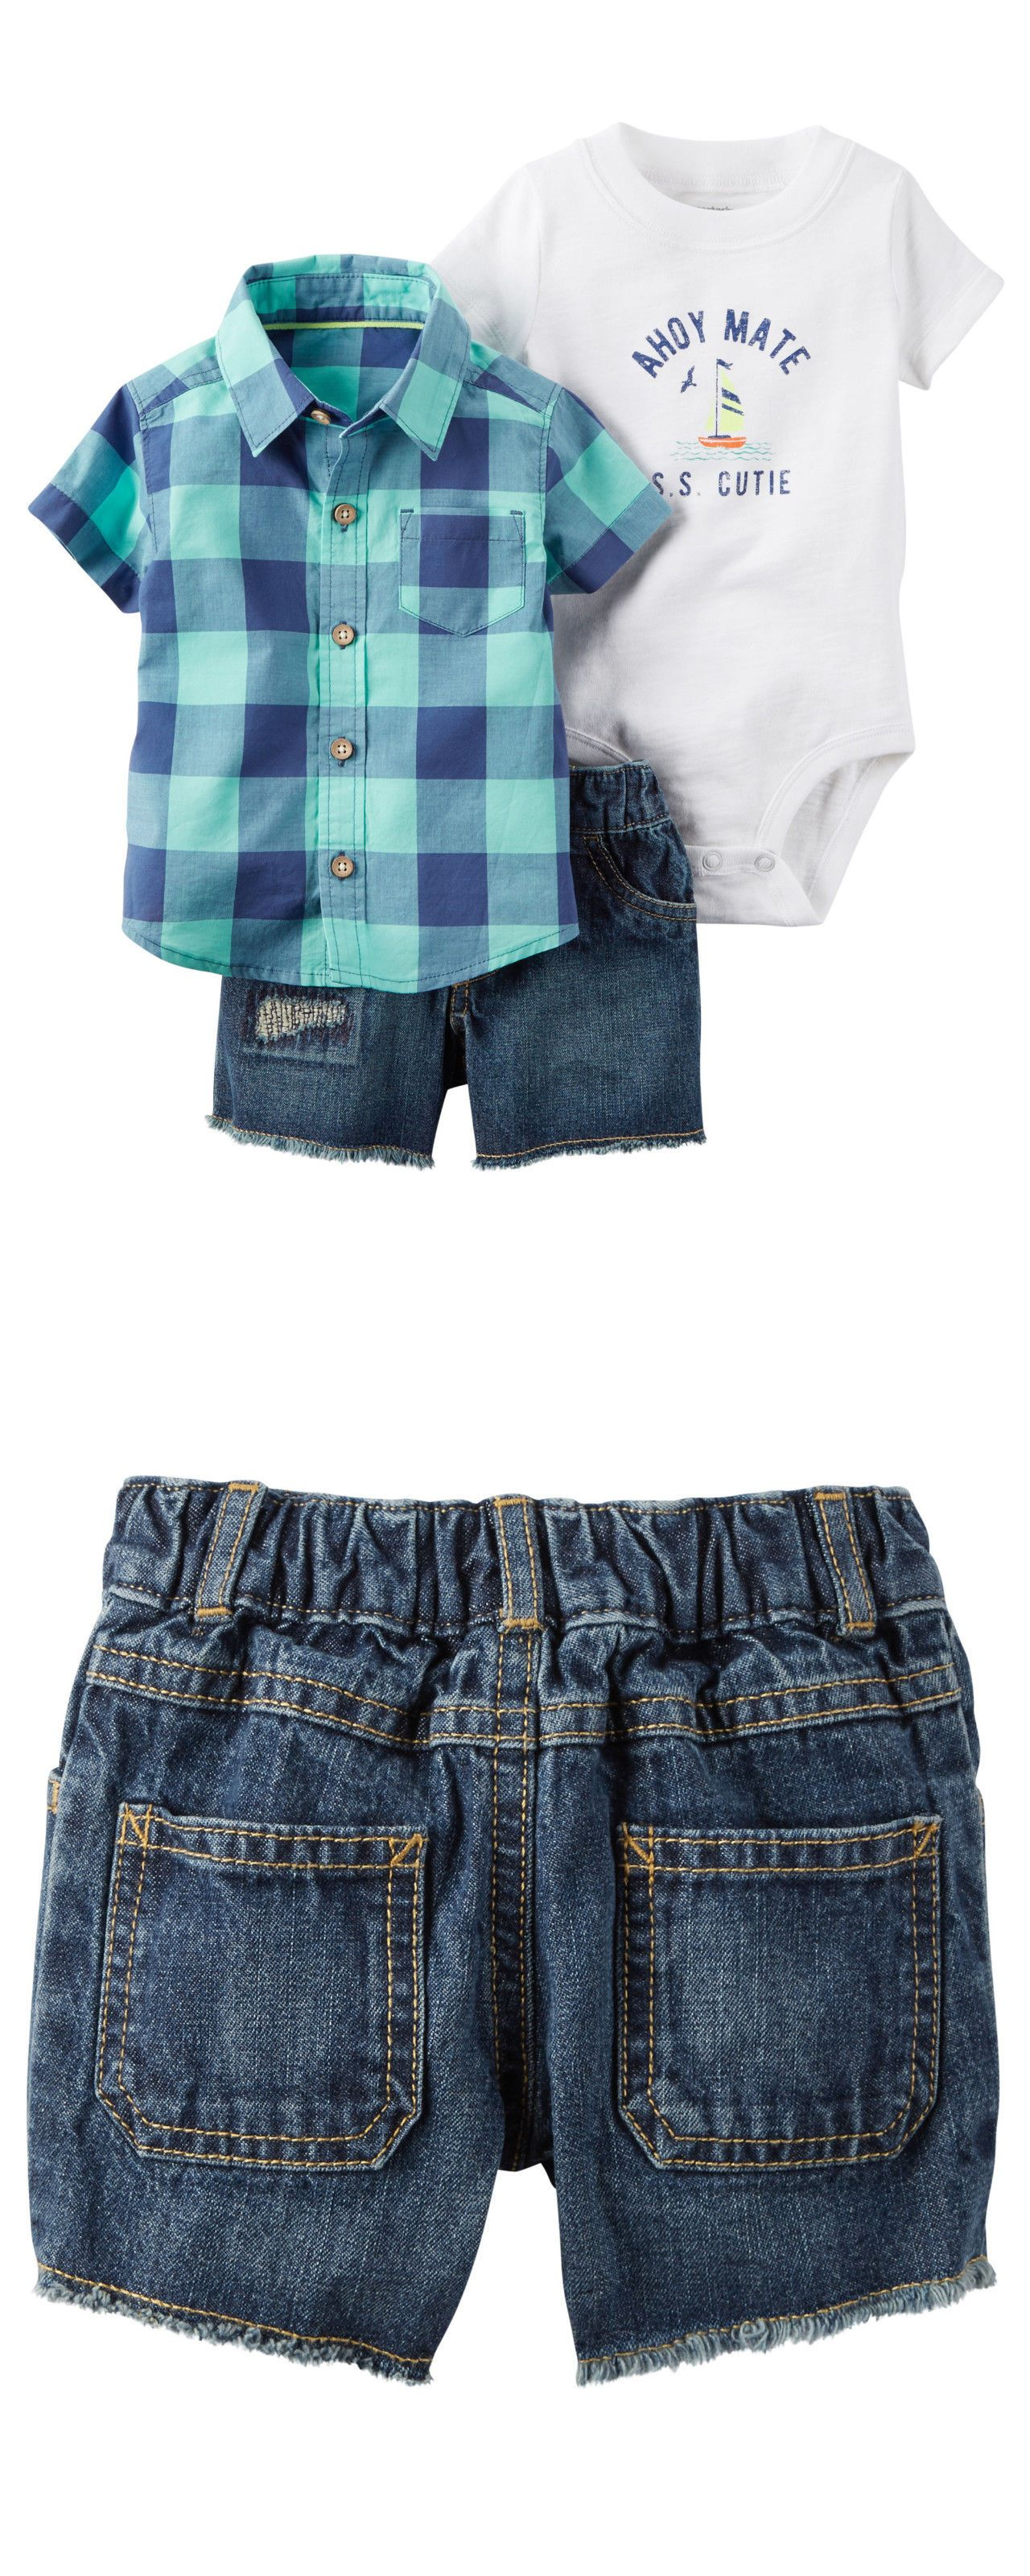 Outfits and Sets Carters Nb 3 6 9 12 18 24 Months Shirt